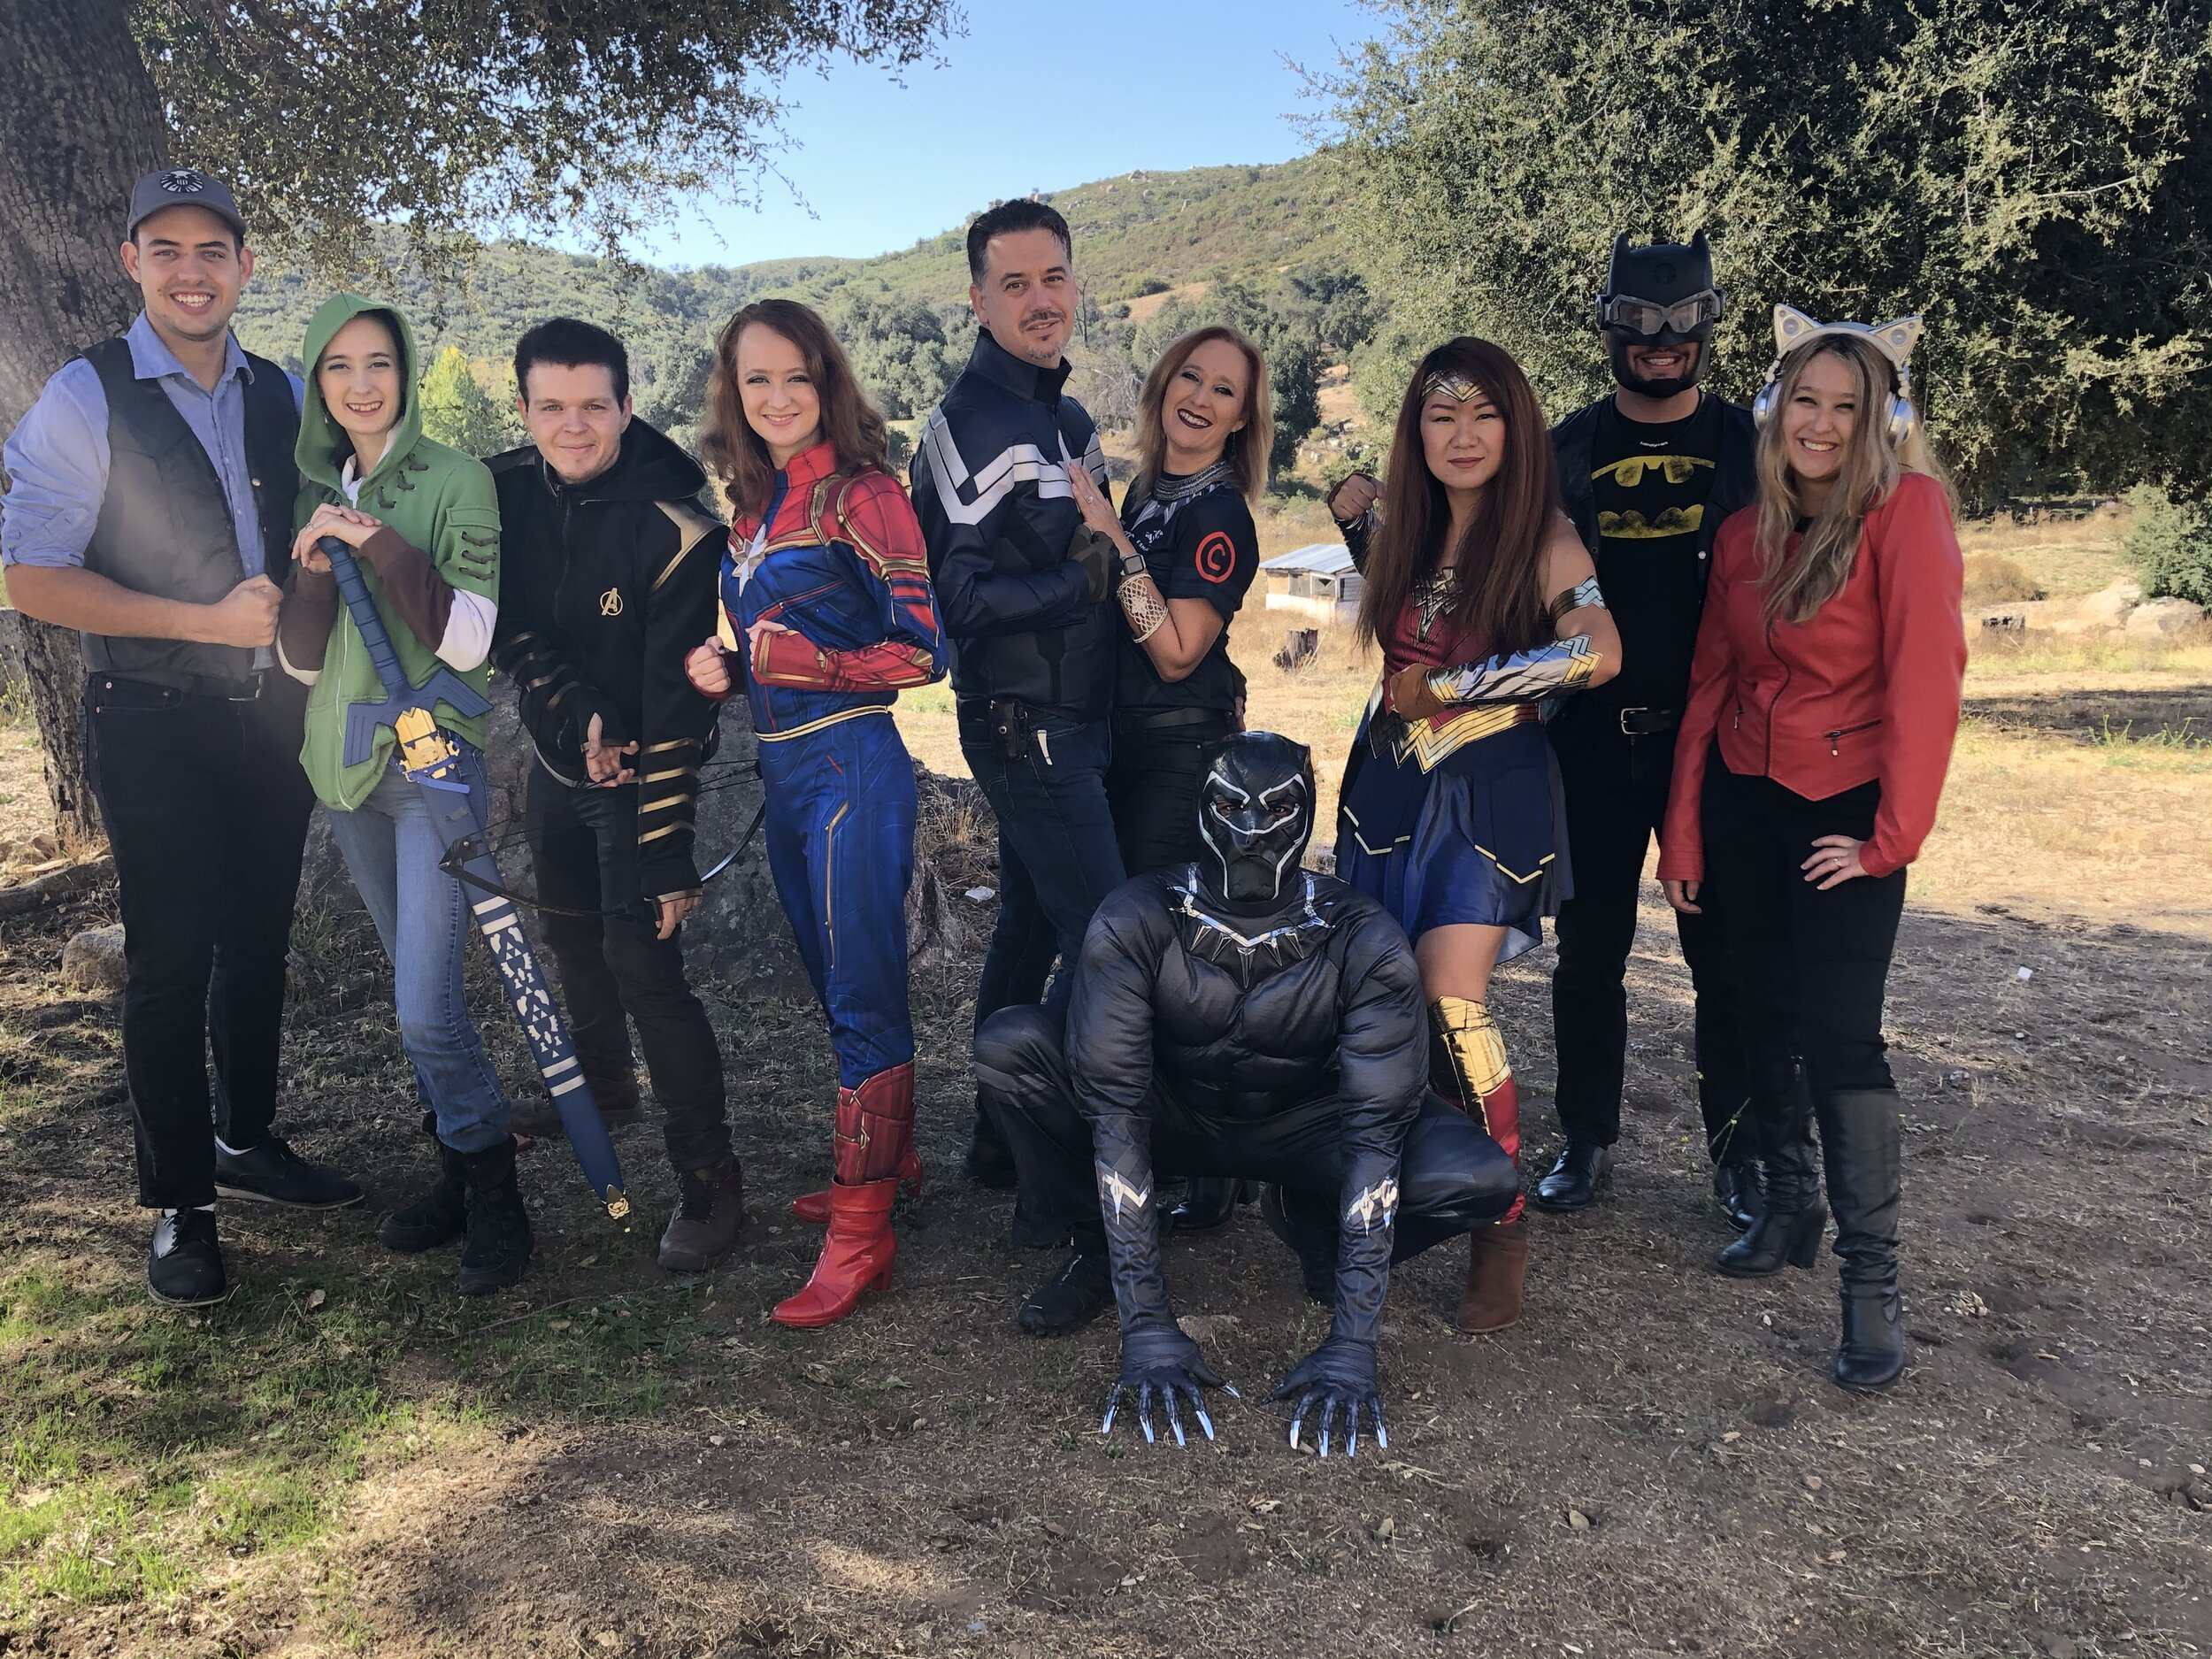 Your LECTURER SUPERHEROES! Ready to save the day!